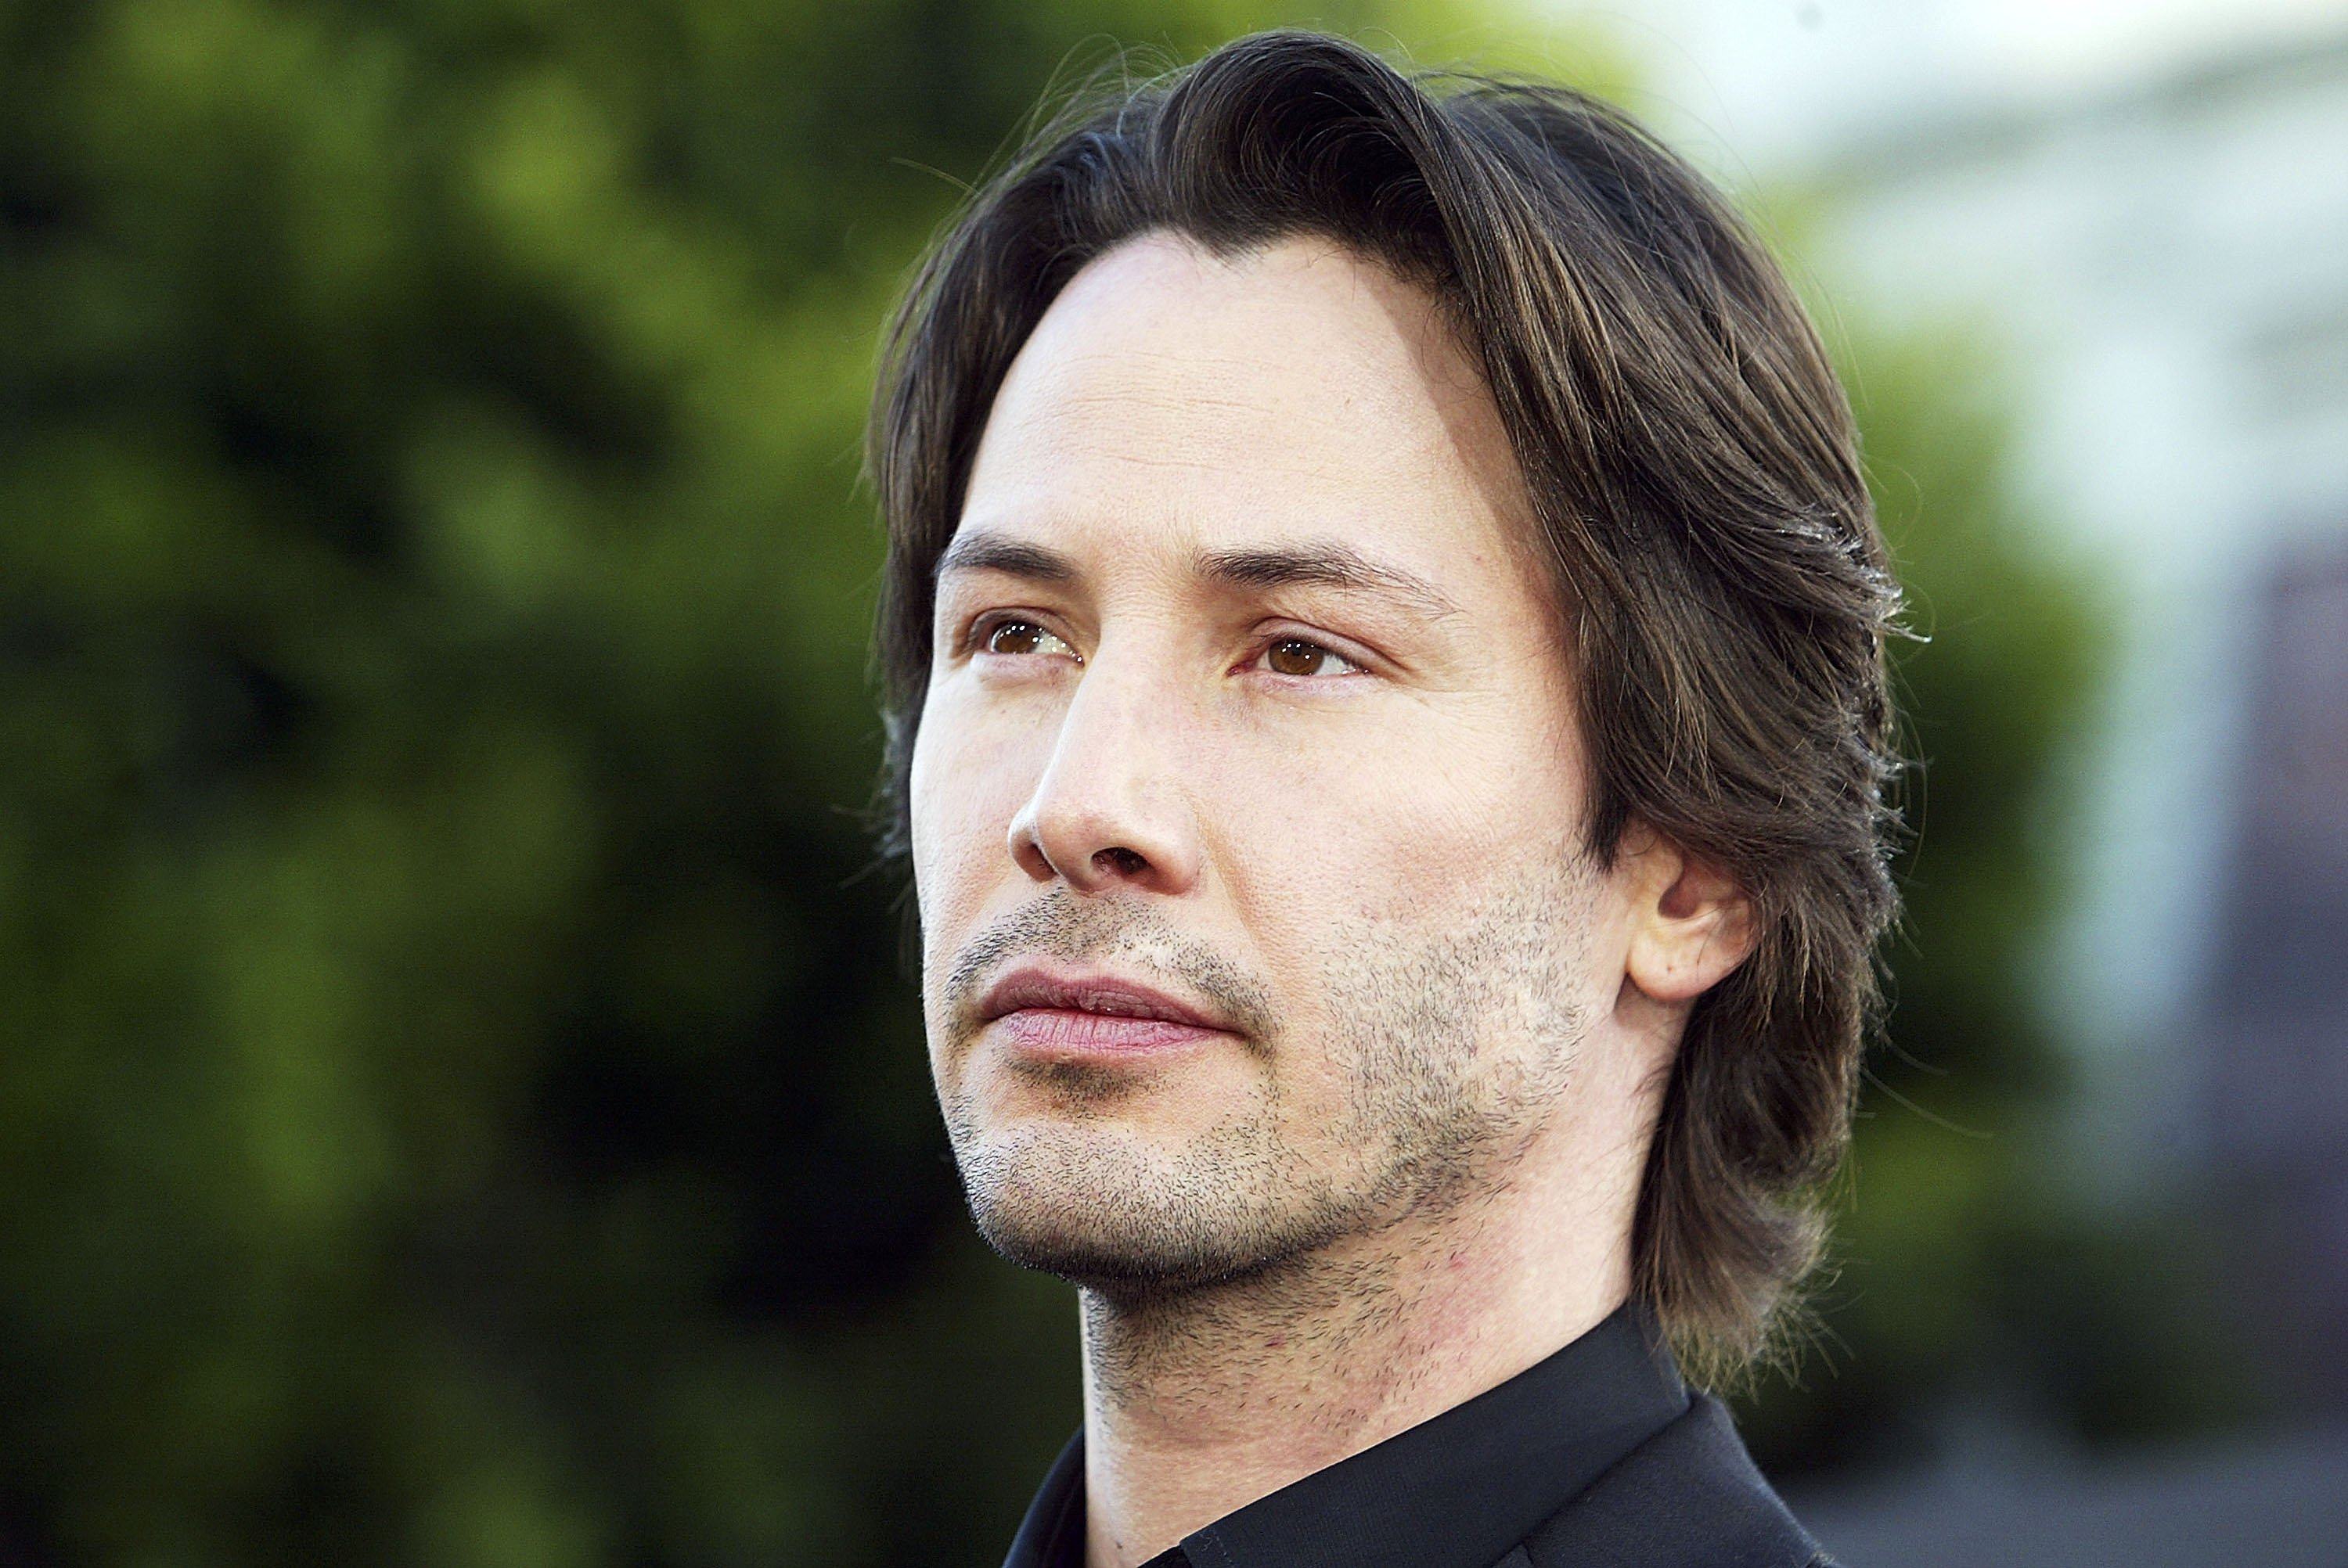 """Keanu Reeves attends """"The Matrix Reloaded"""" premiere at the Village Theater on May 7, 2003, in Los Angeles, California 